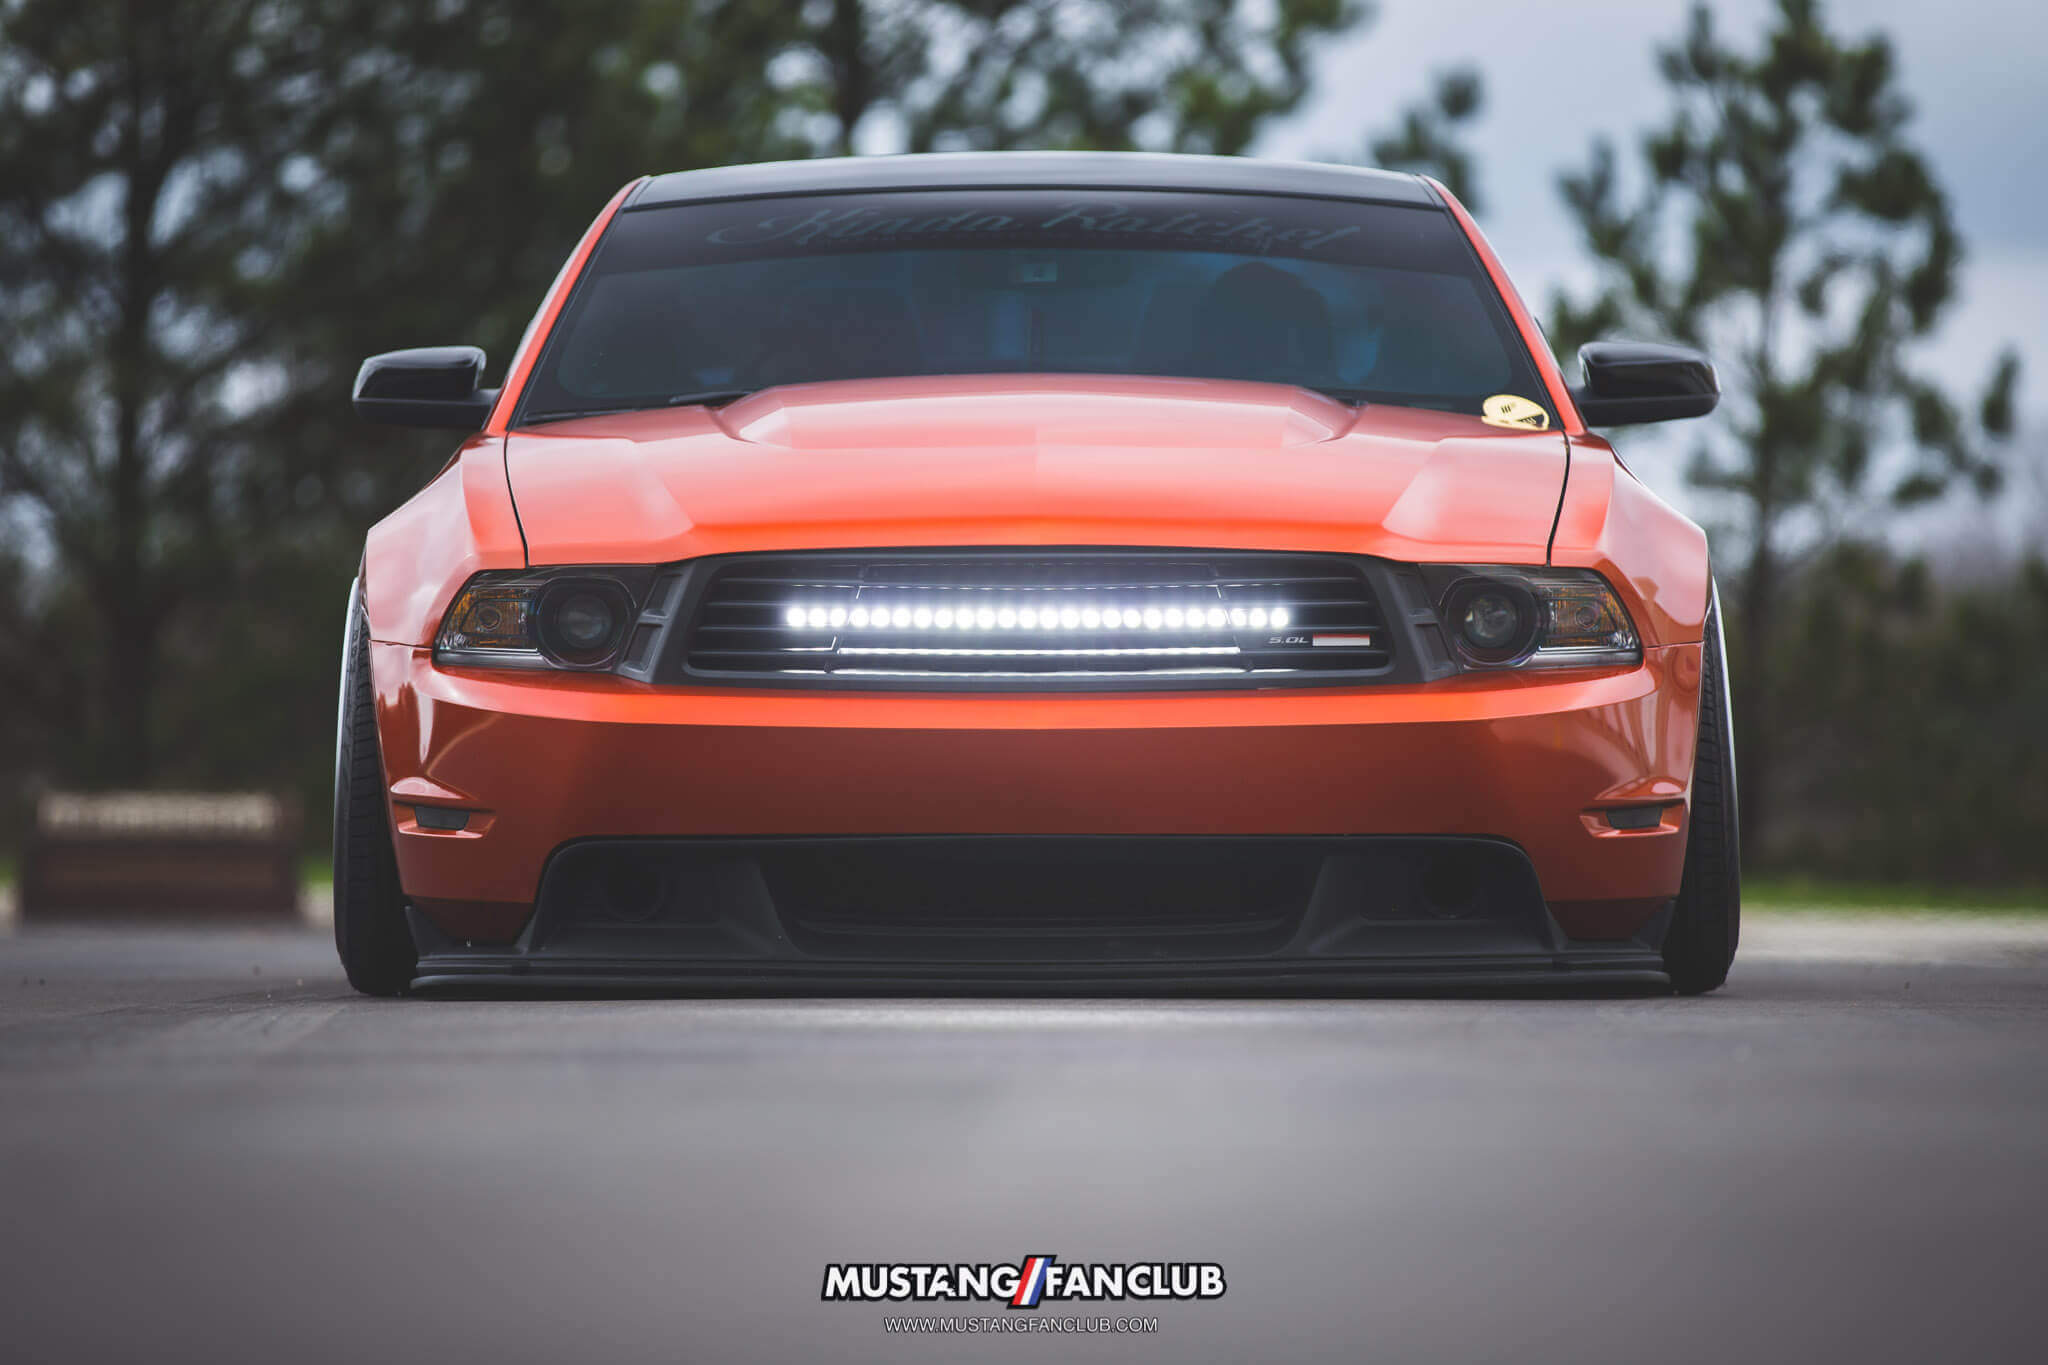 mustang fan club mustangfanclub @mustangfanclub 2011 11 mustang coyote 5.0L 5.0 wrapped bagged air suspension air lift performance rotiform wheels dillon shand RSE light bar s197 Saleen grill grille GT/CS gtcs front valence cervini 3m 1080 fiery orange